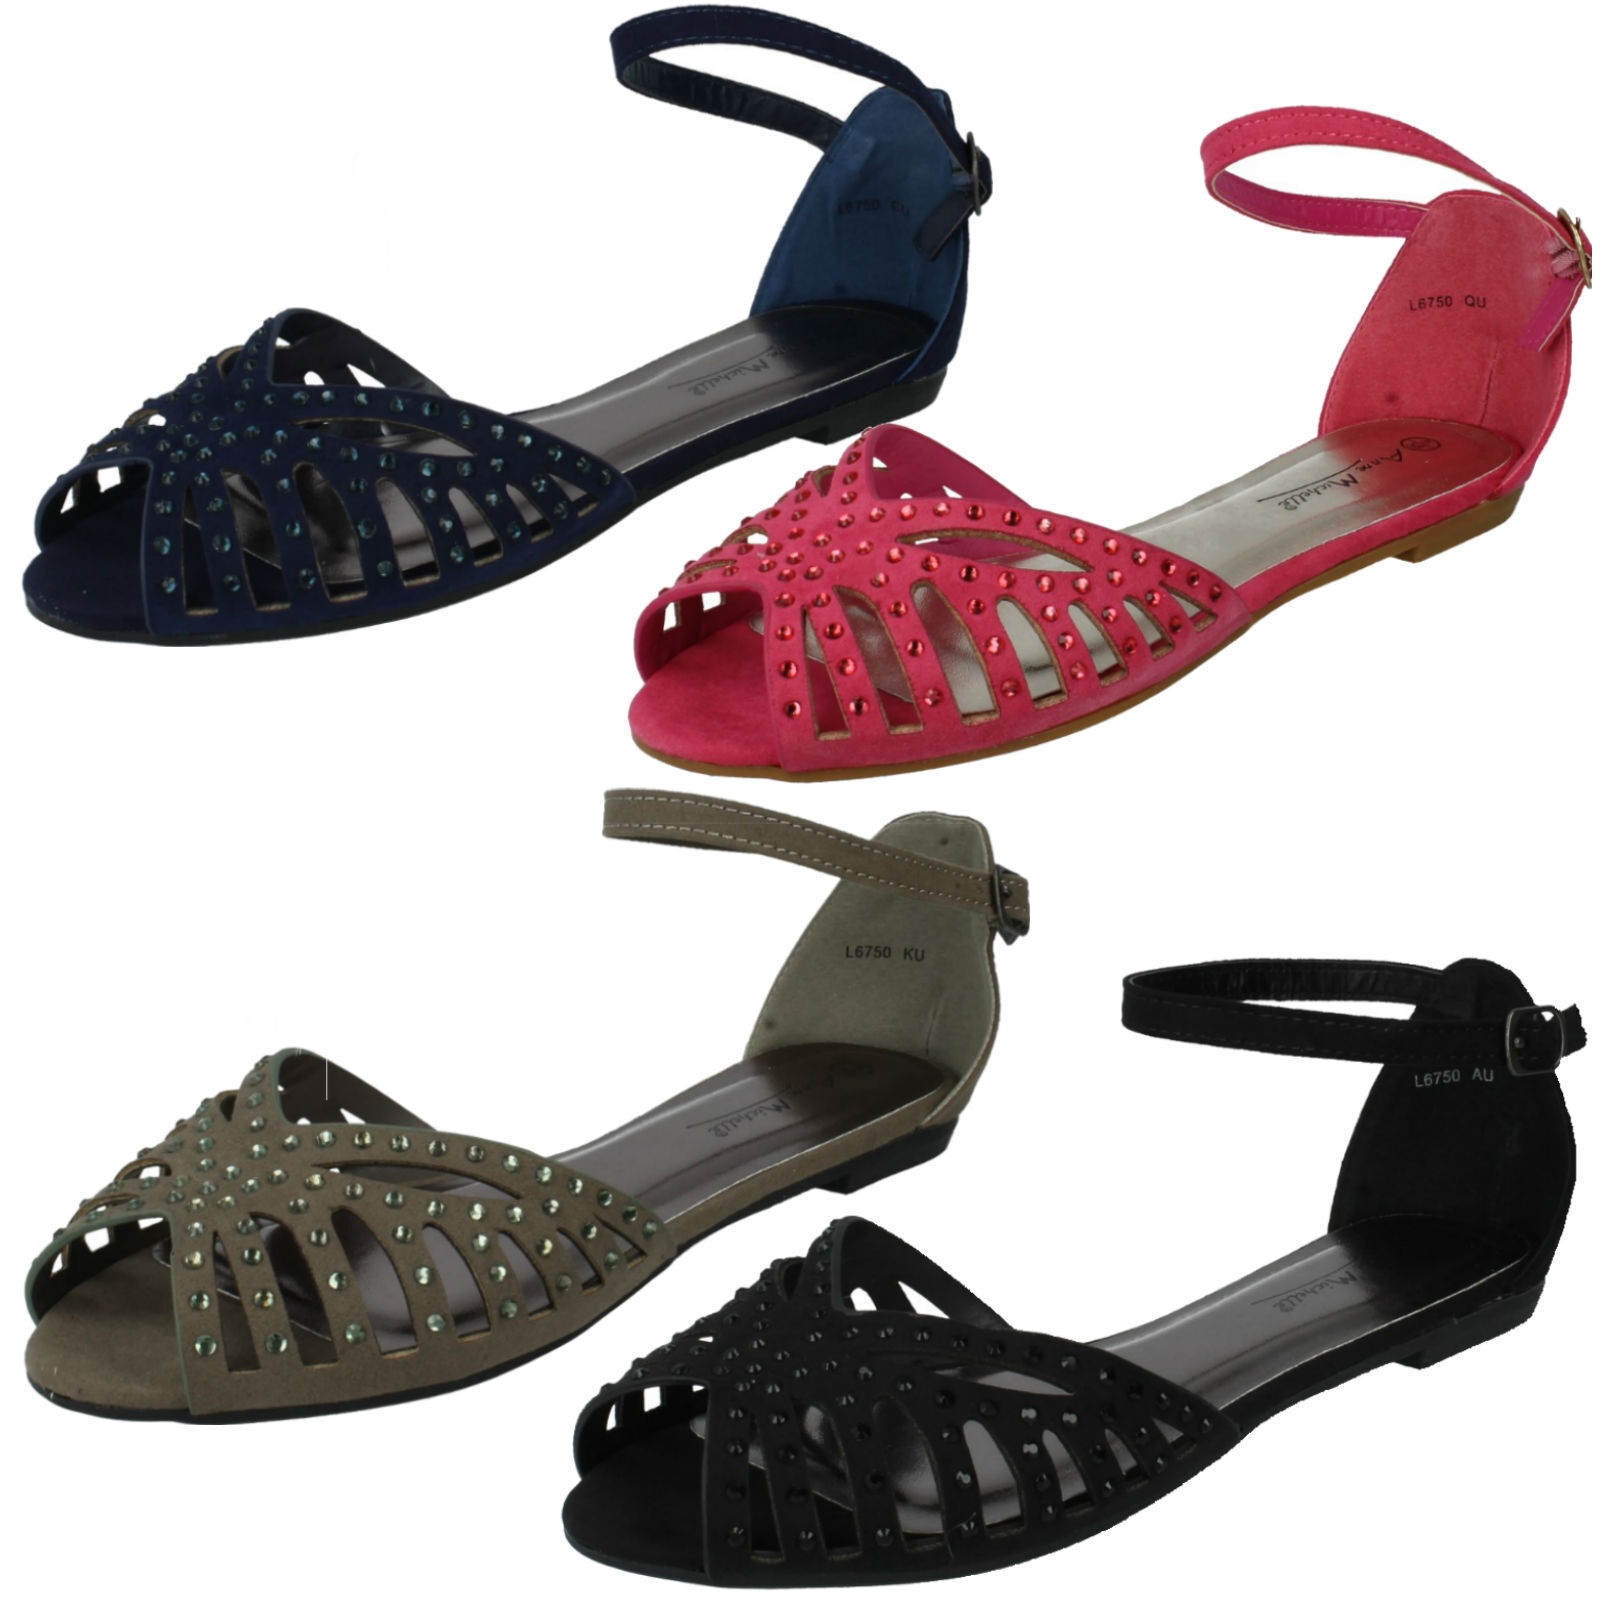 LADIES ANNE MICHELLE STRAP PEEP TOE FLAT ANKLE STRAP MICHELLE DIAMANTE SUMMER SANDALS L6750 e5b655